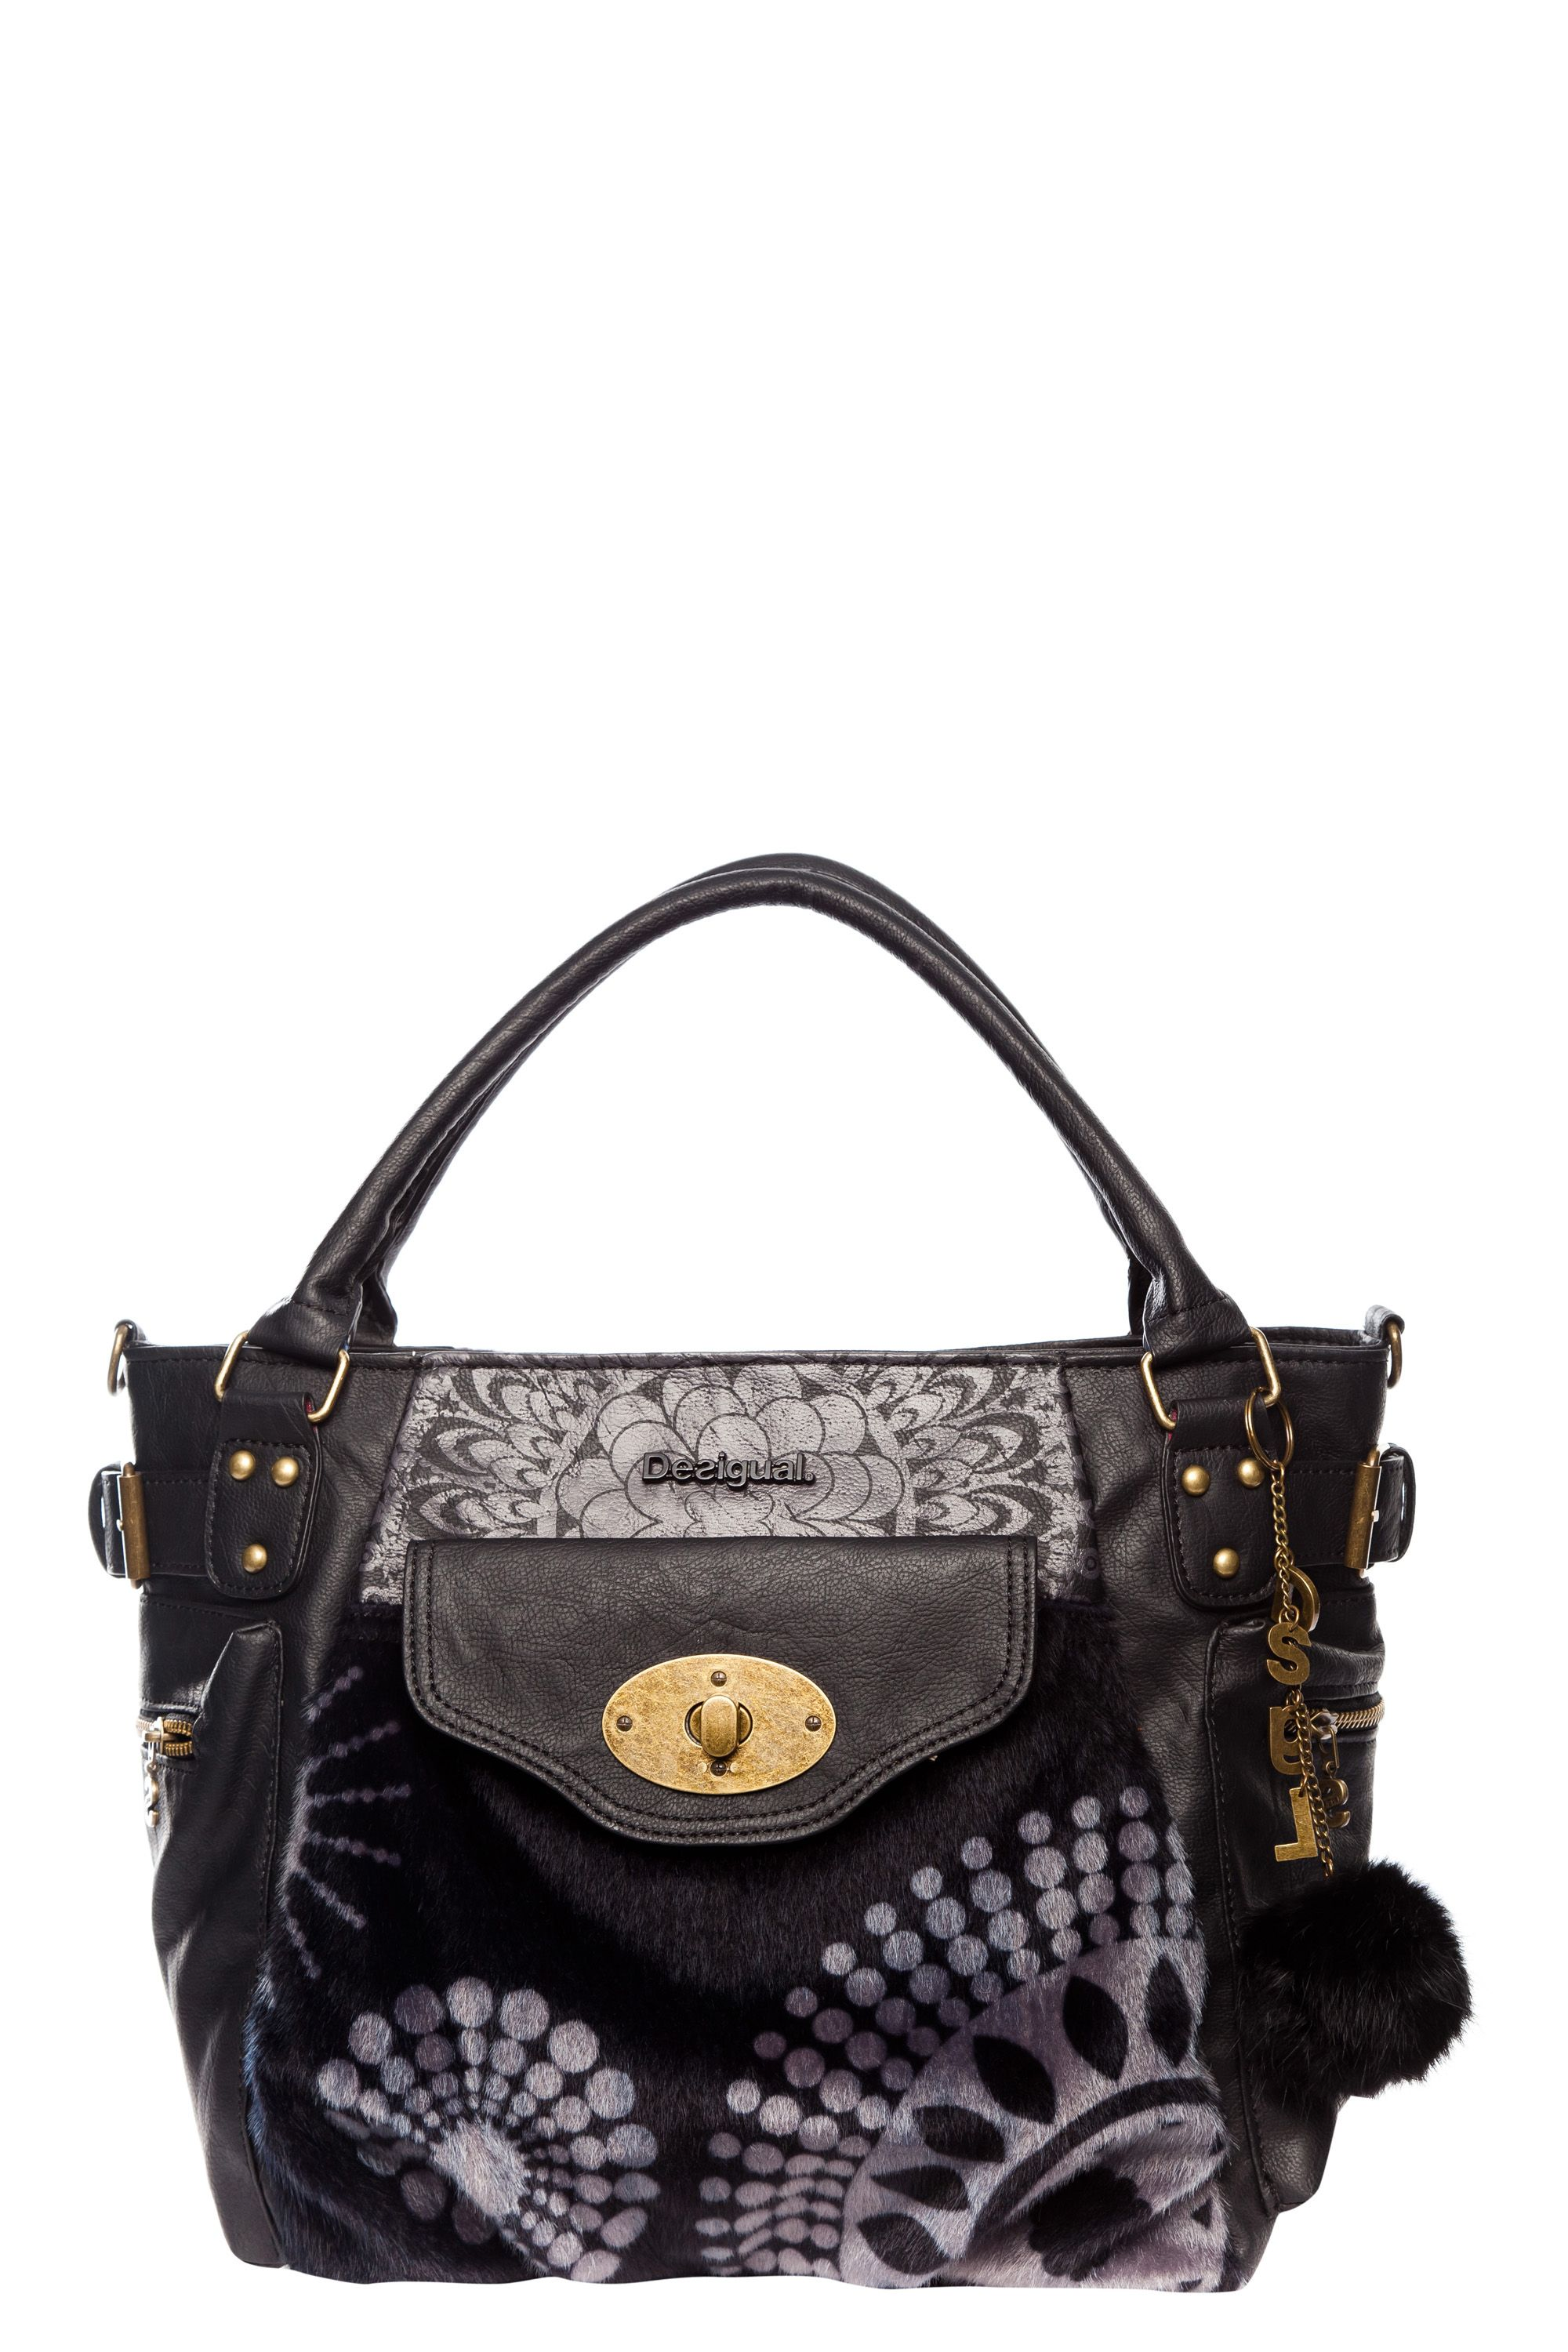 Printed faux fur handbag